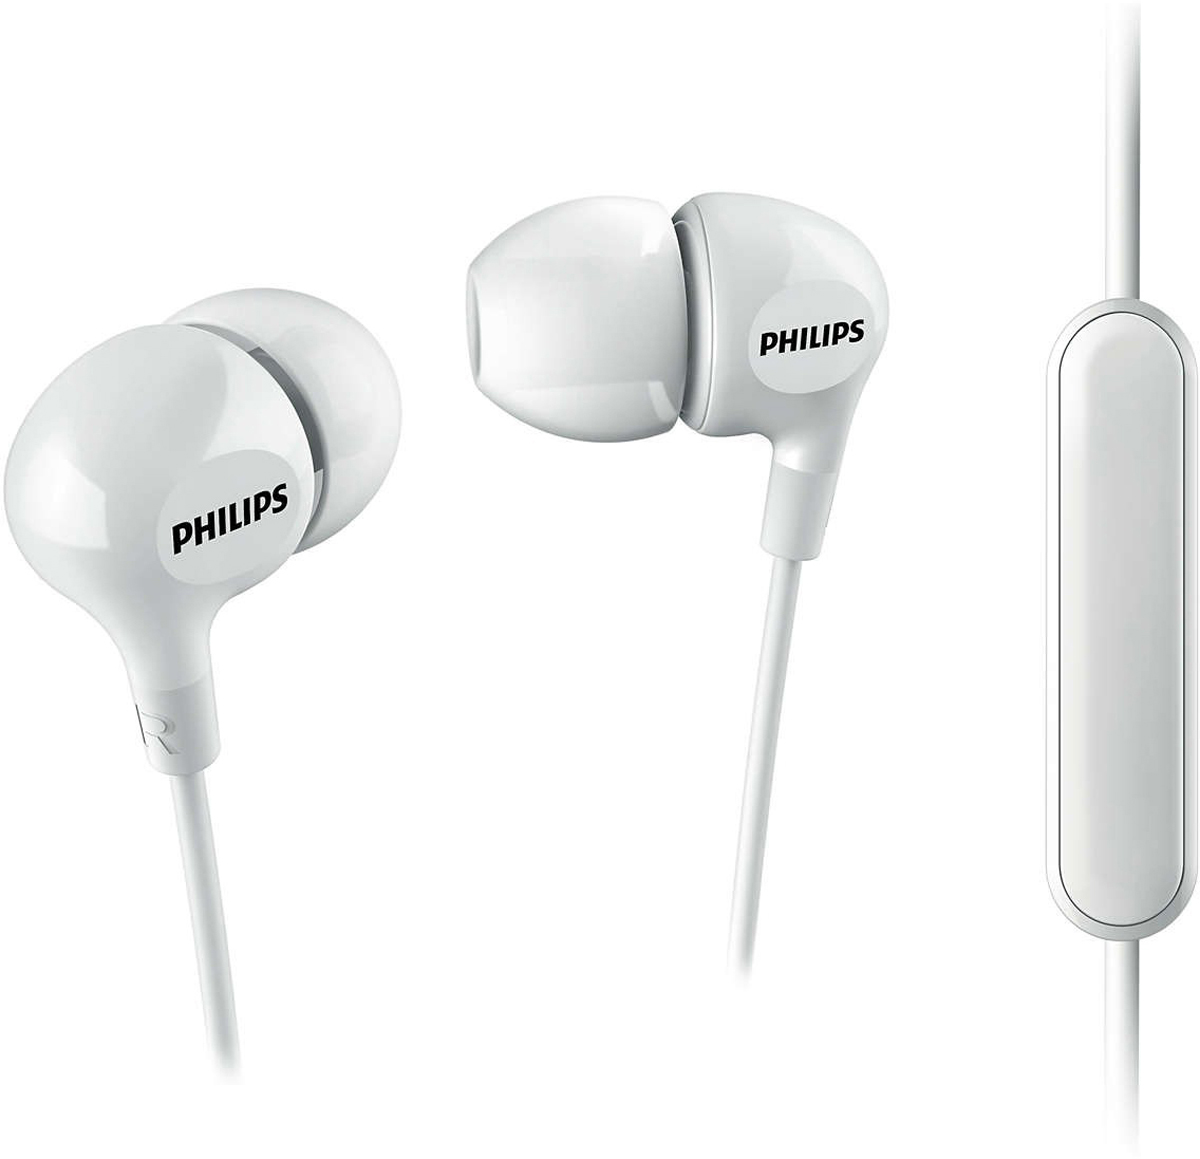 Philips SHE3555, White наушники наушники philips she1450 white